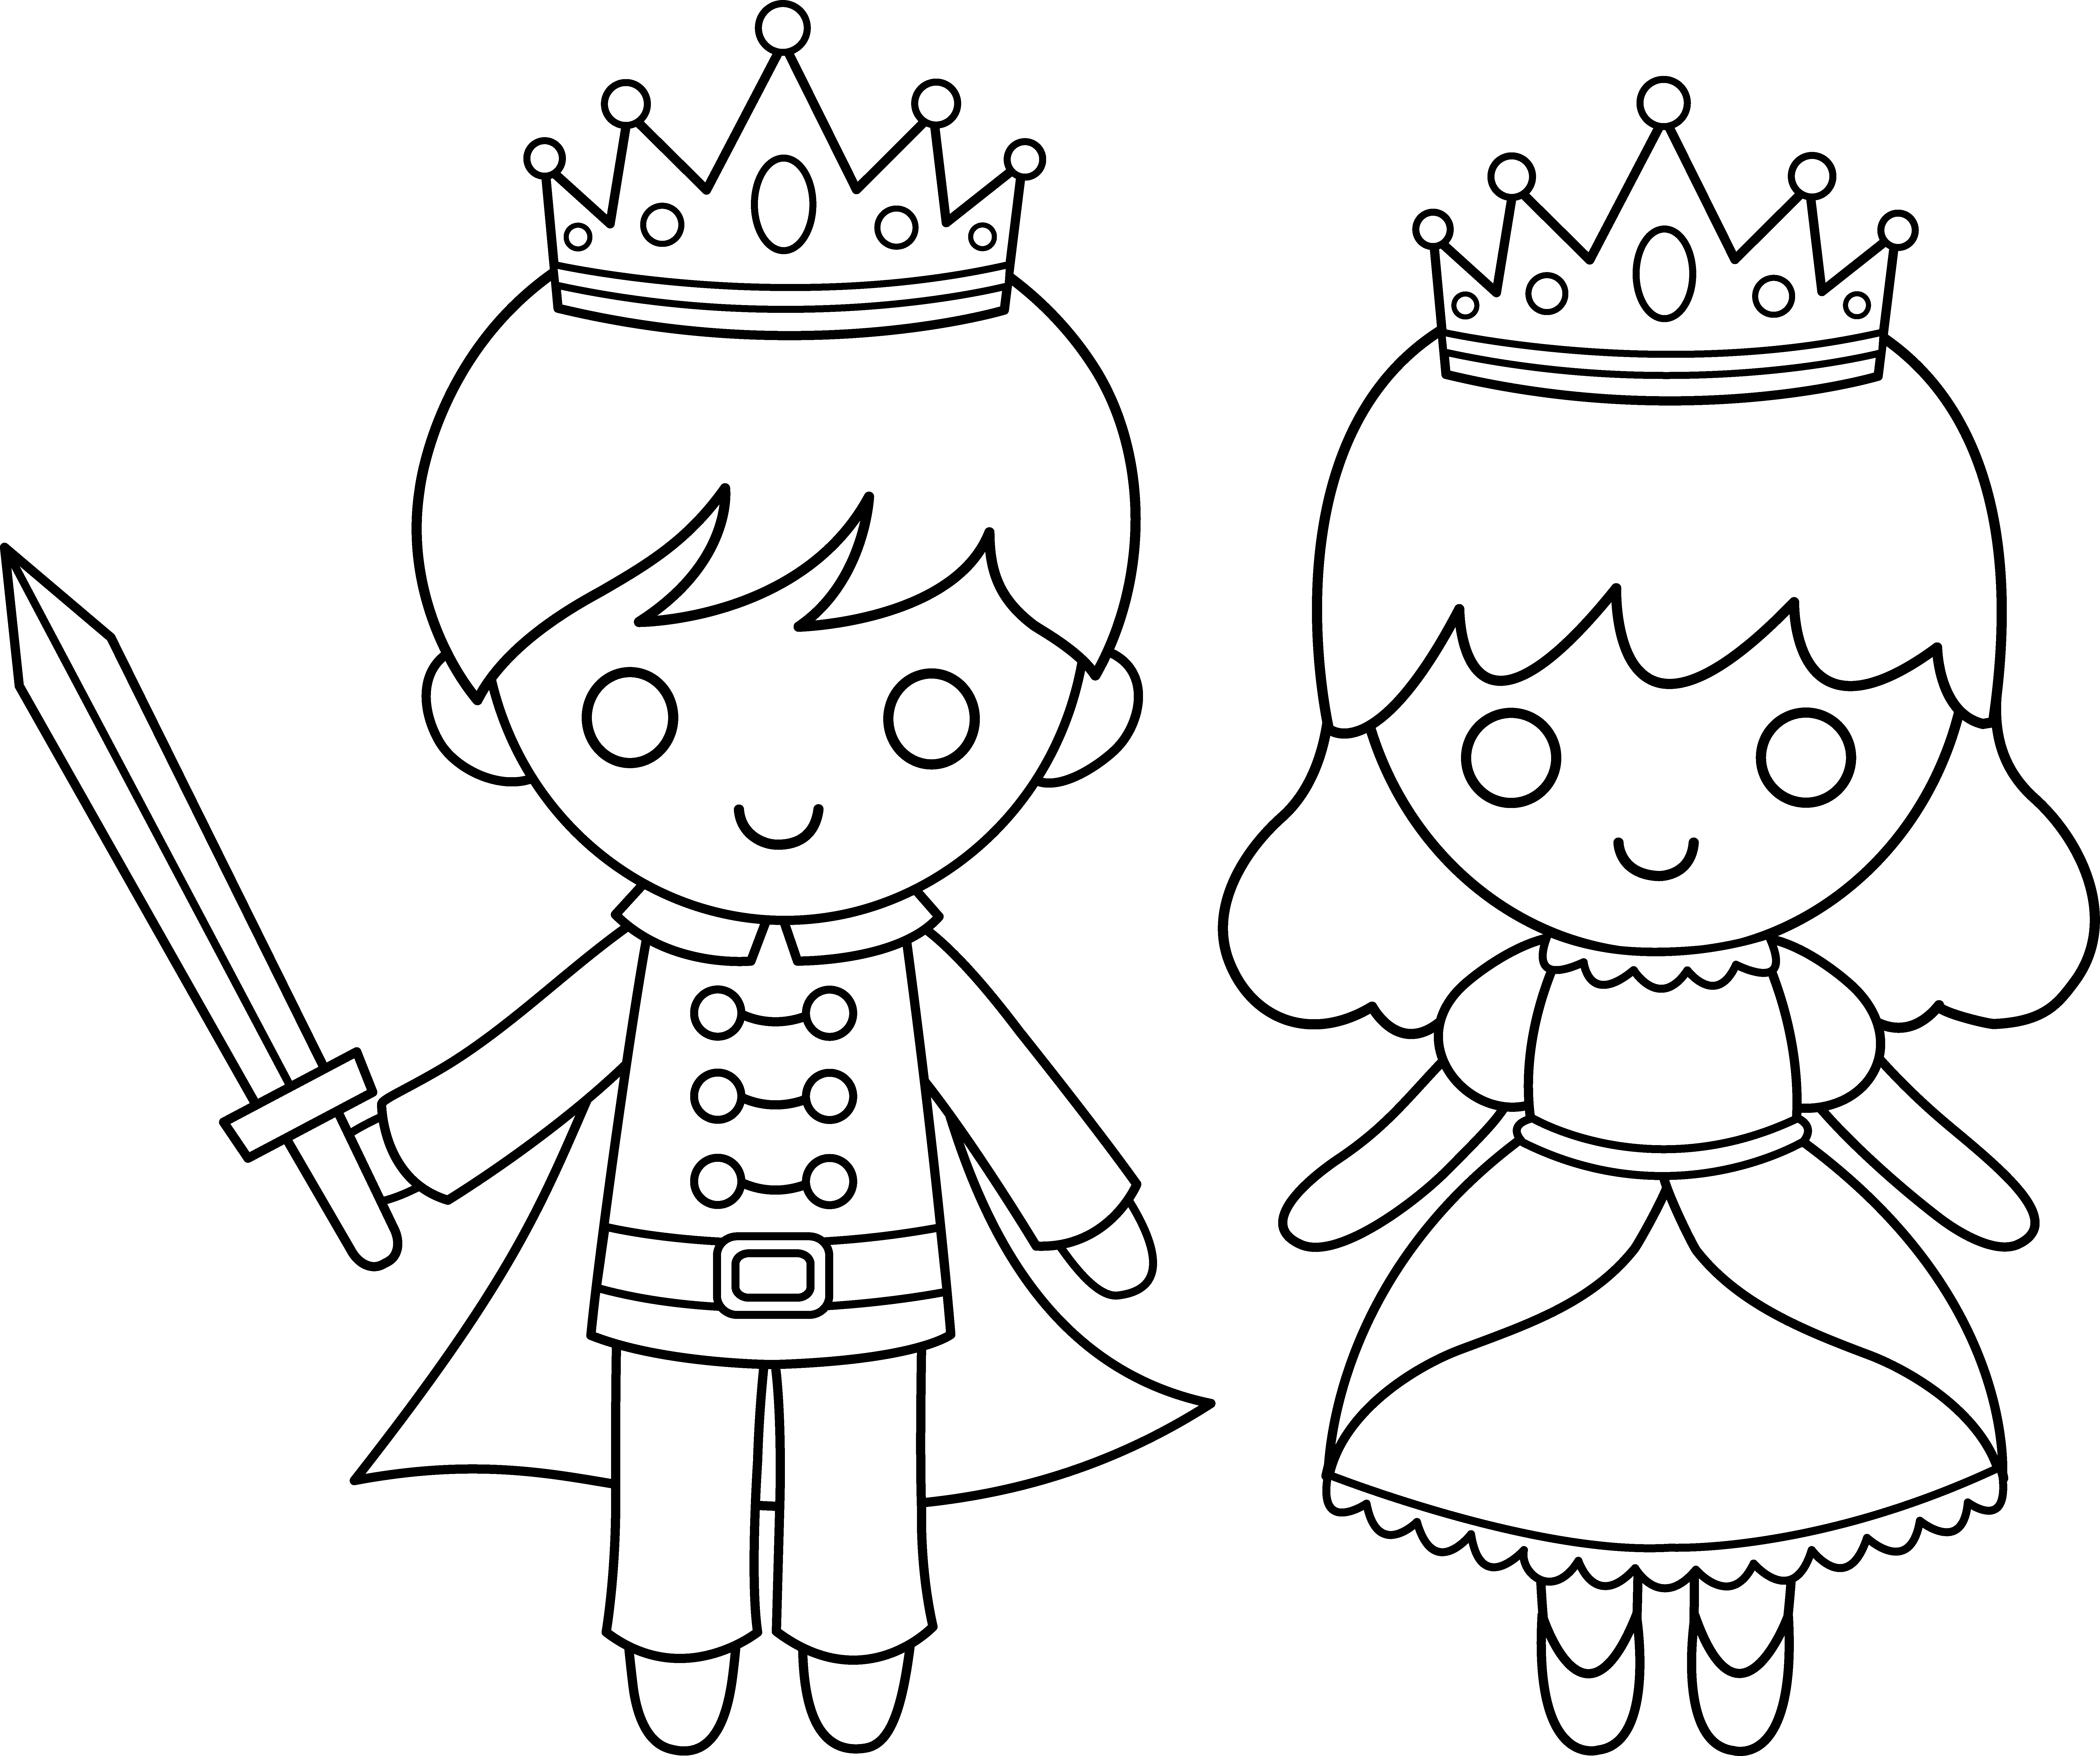 picture transparent download Princess clipart black and white. Prince line art drawing